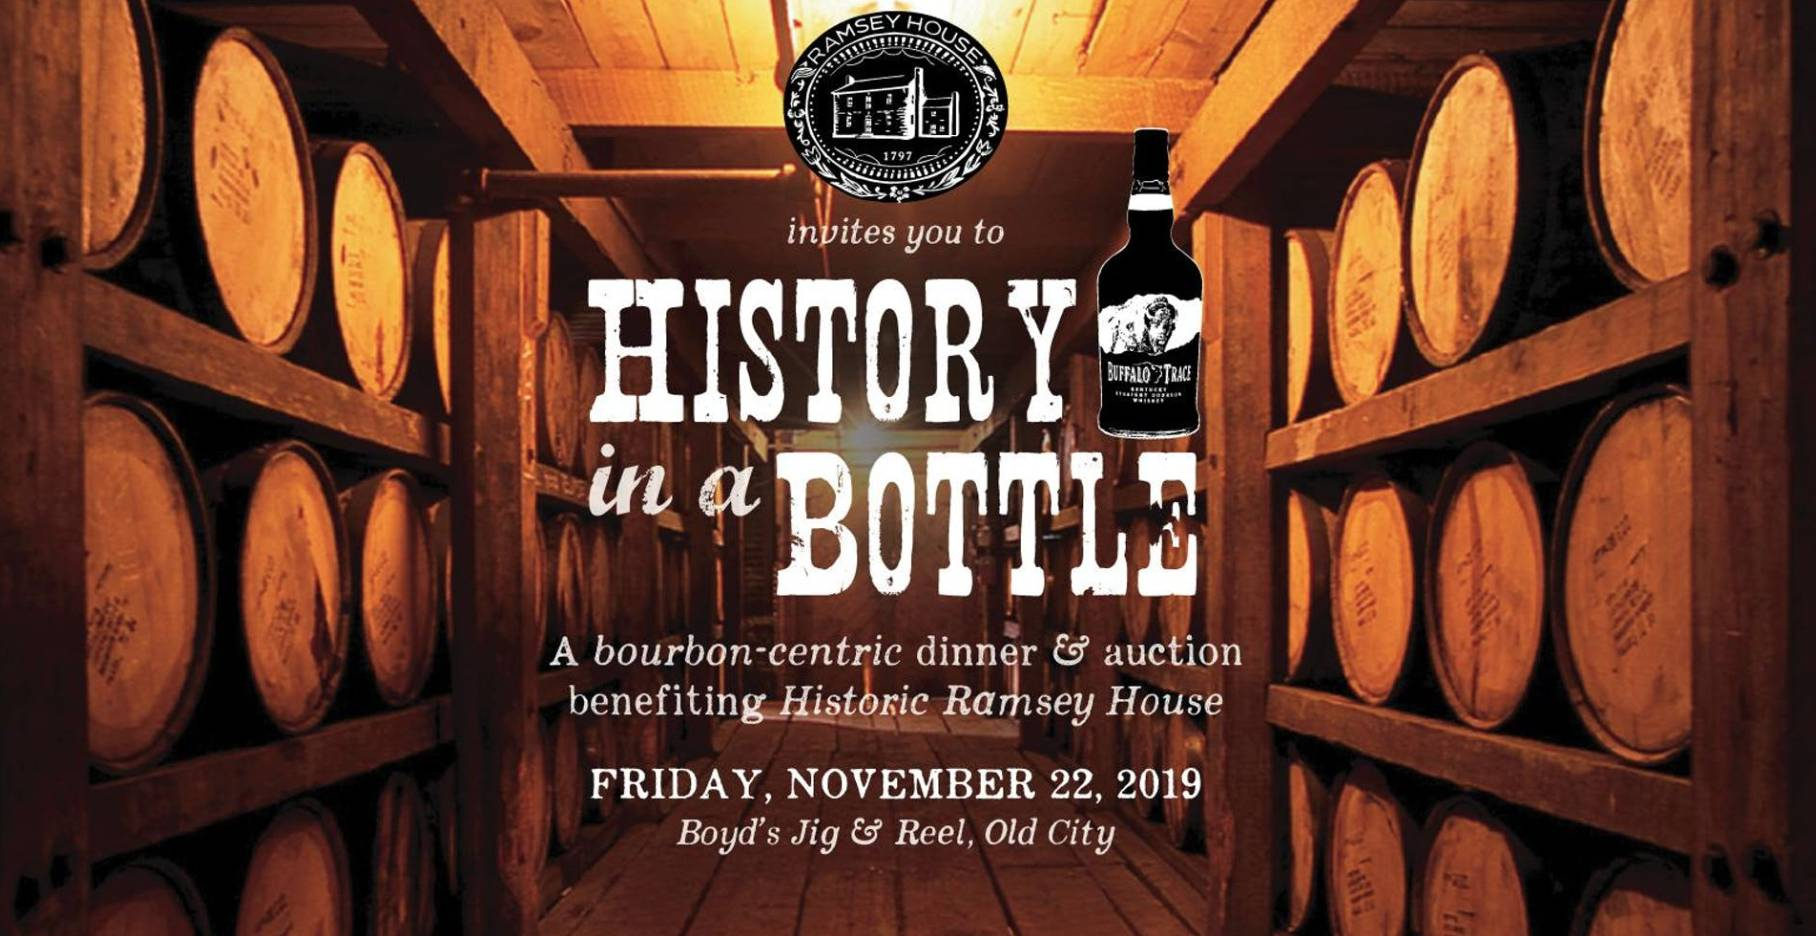 History in a Bottle: A Bourbon-Centric Dinner and Auction